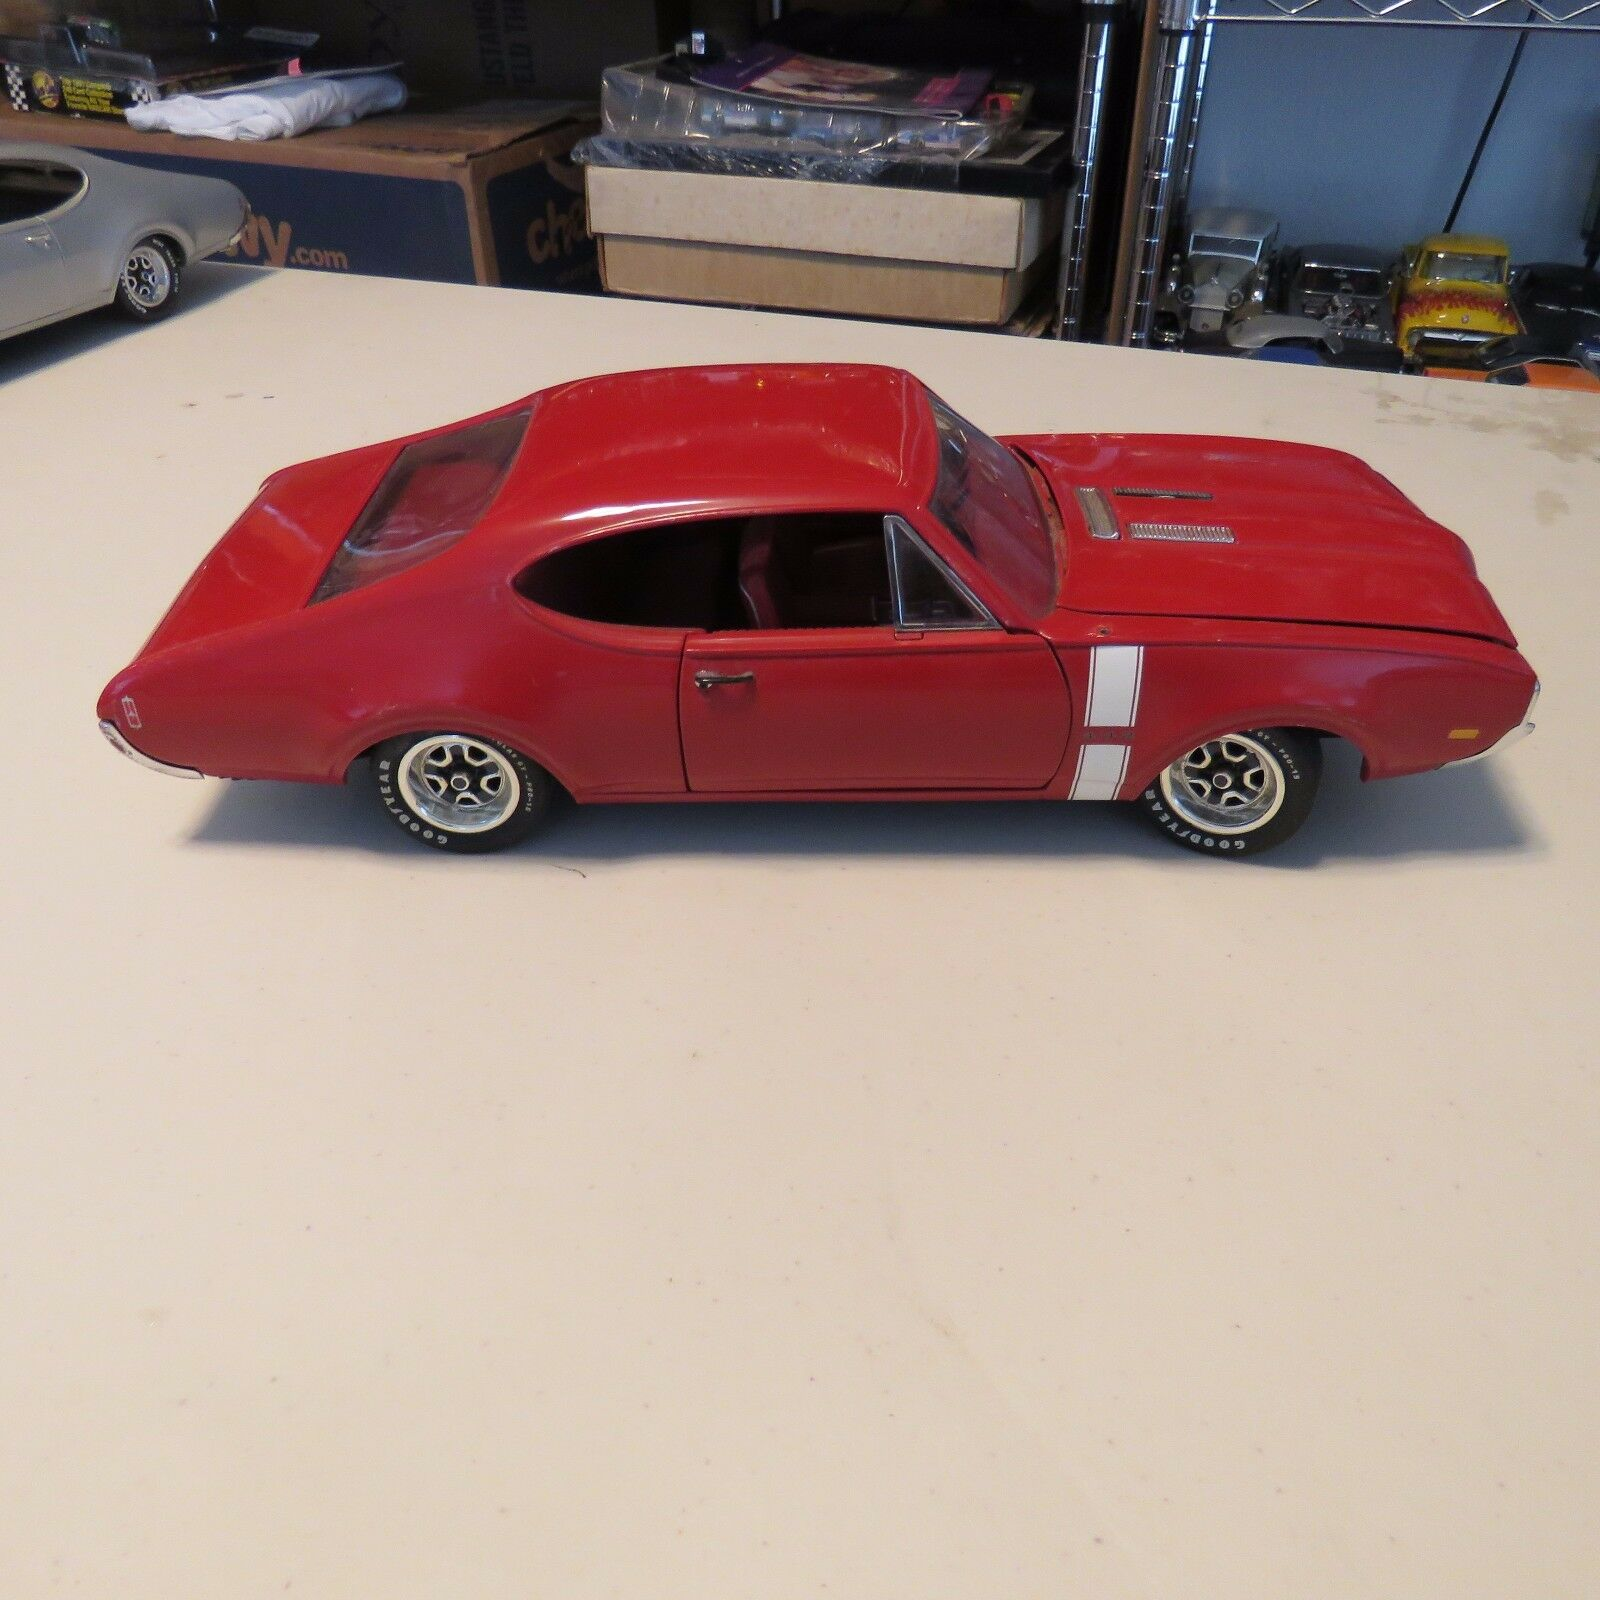 ERTL 1 18 SCALE DIE CAST 442 OLDSMOBILE  RED